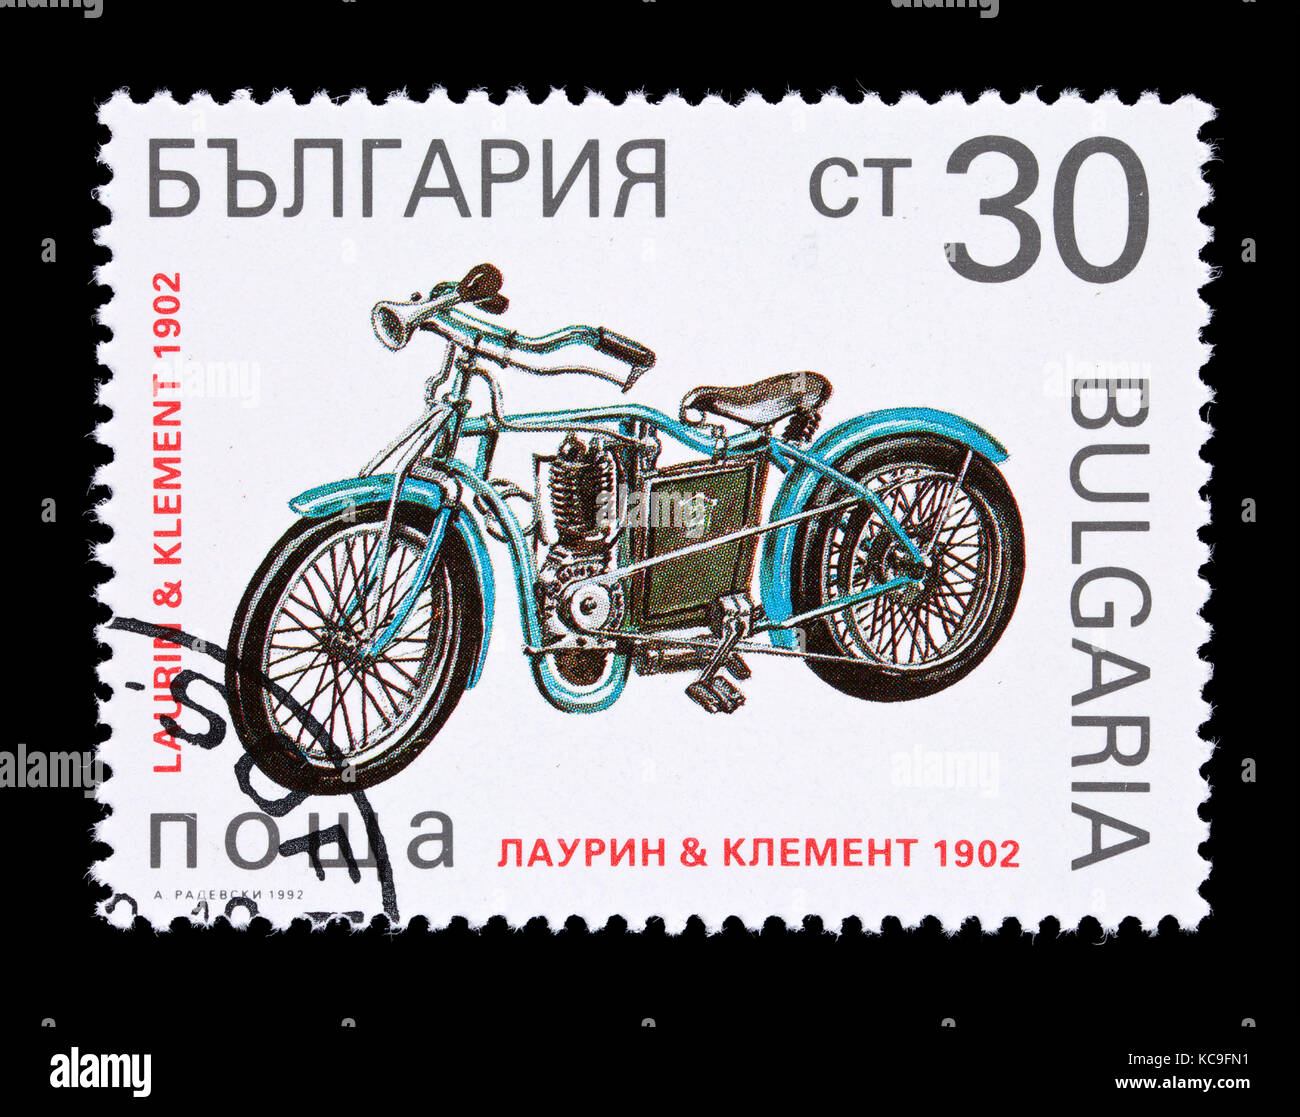 POstage stamp from Bulgaria depicting a 1902 Laurin and Klement motorcycle. - Stock Image